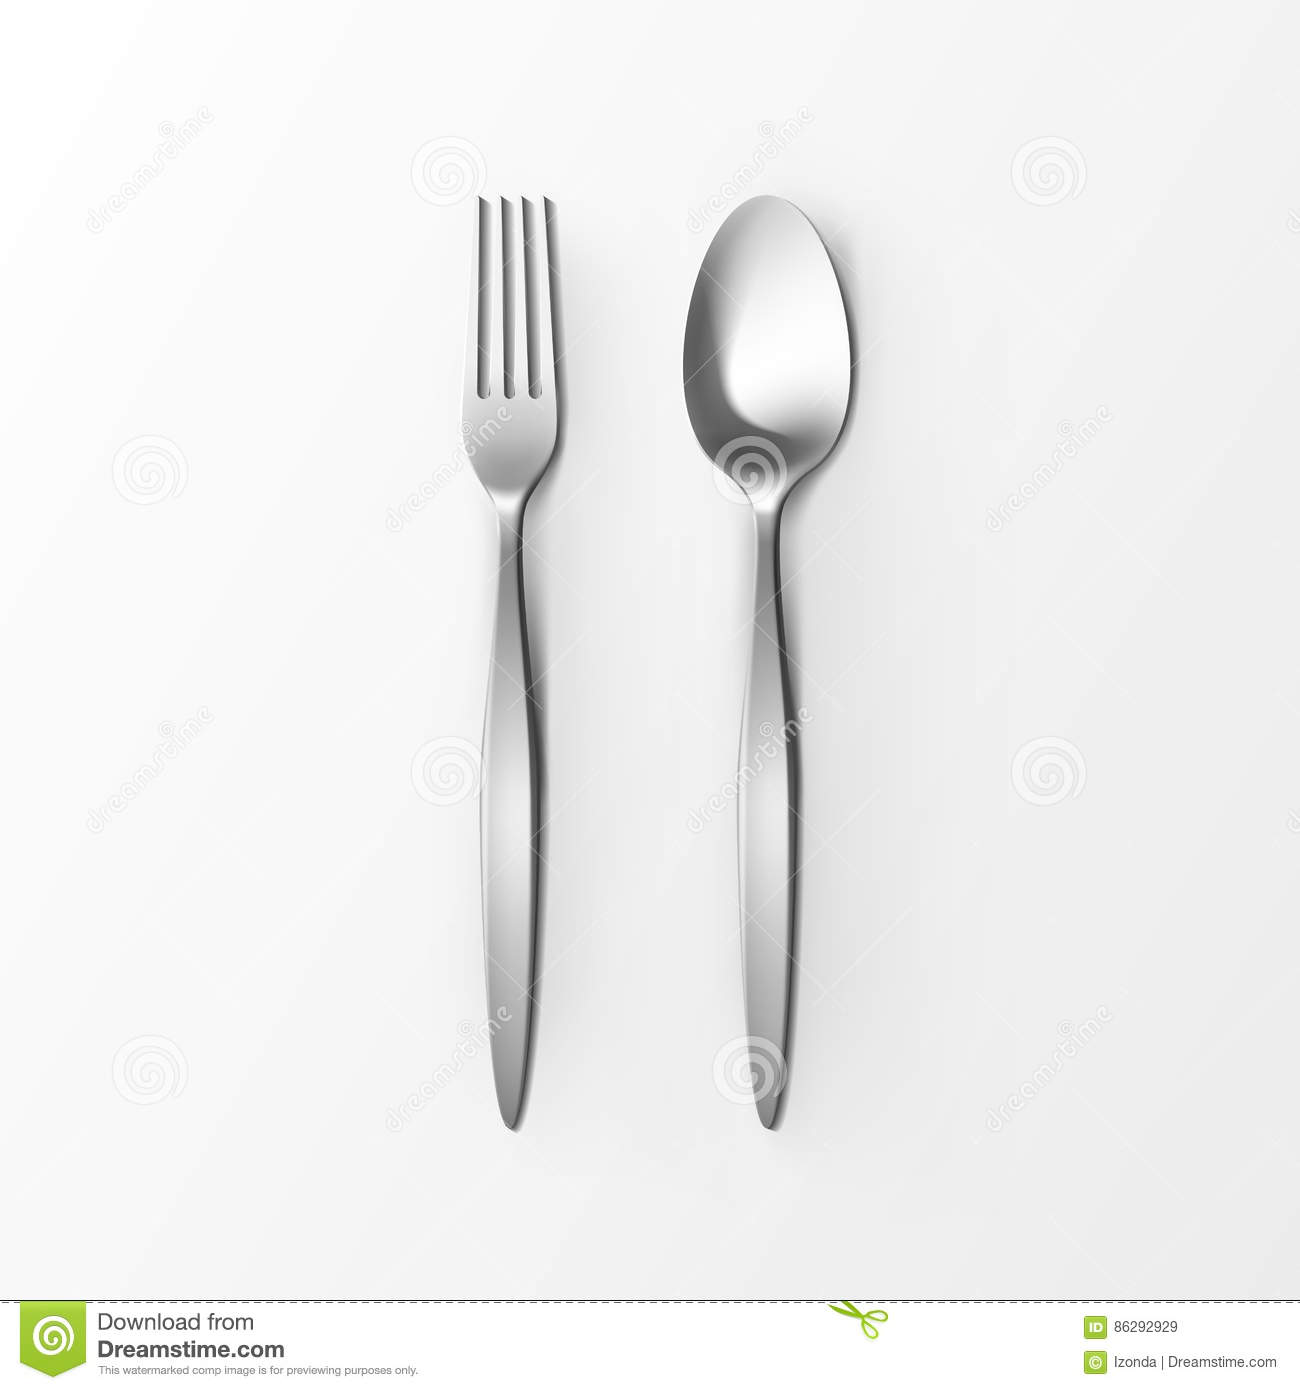 Table Setting Background cutlery set of silver fork and spoon top view isolated on white